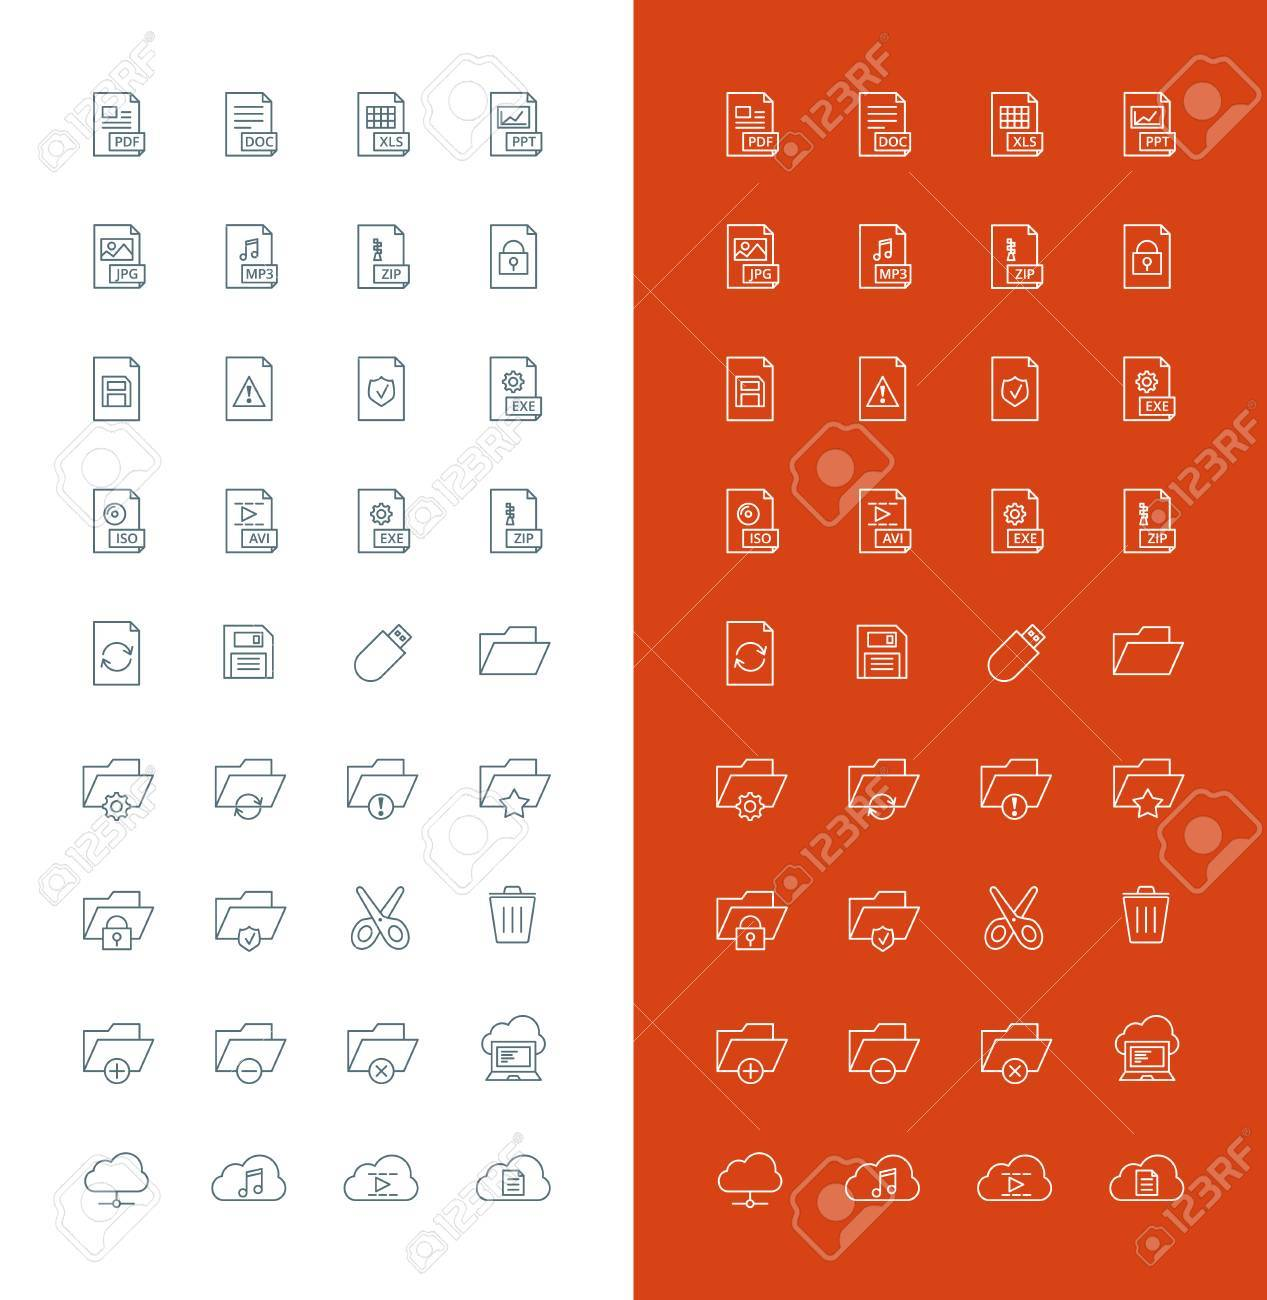 Files and Folders Line Art Design Vector Icon Set  File Types,